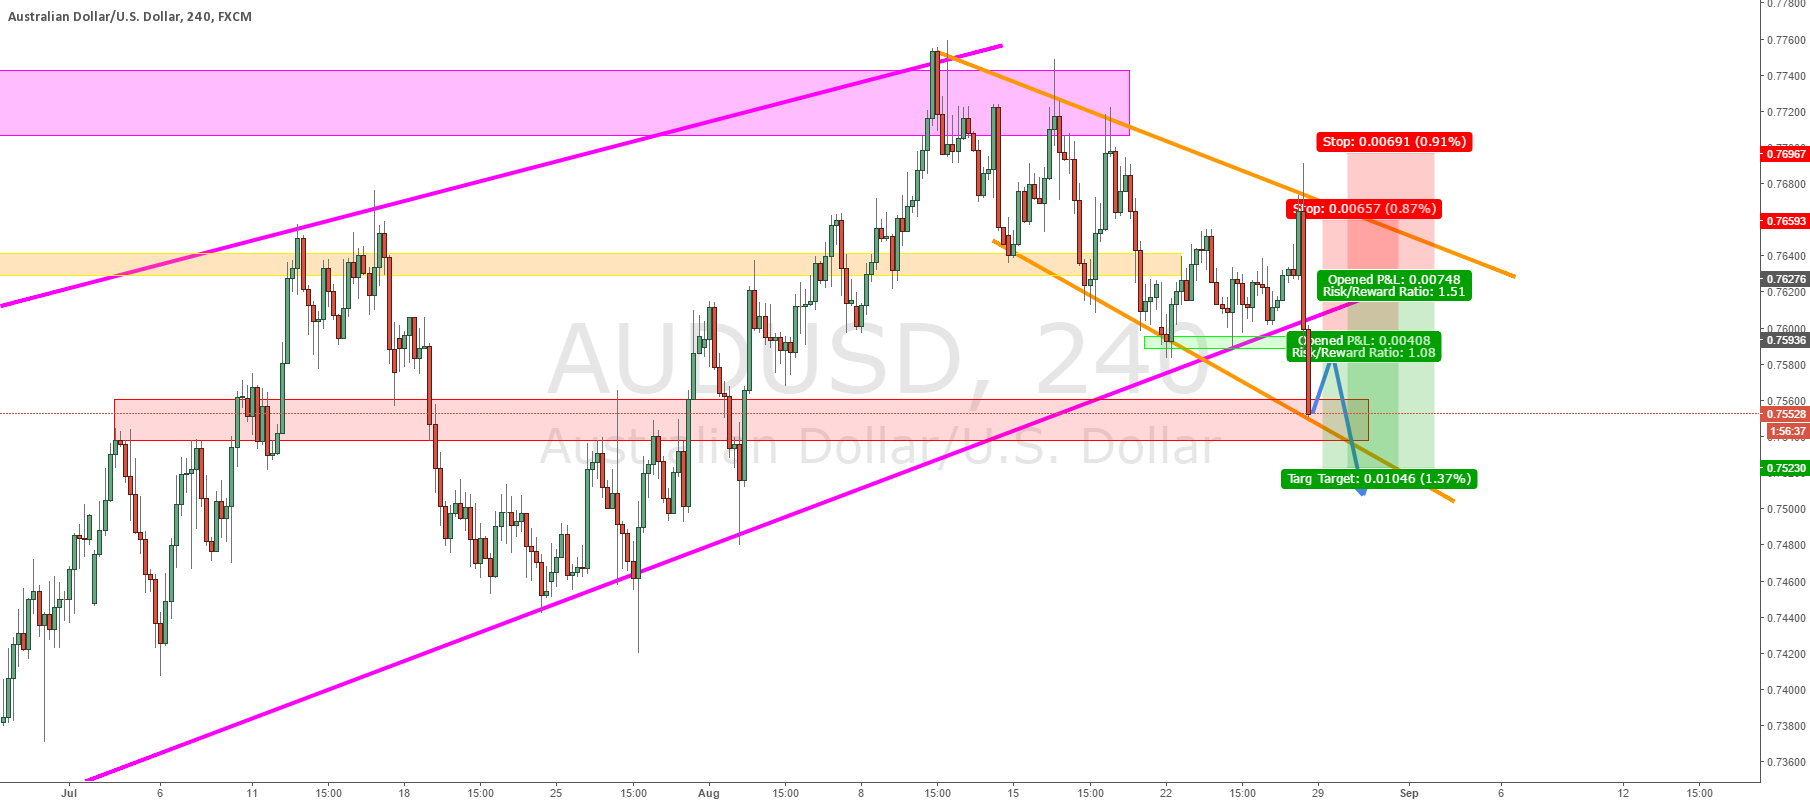 AUDUSD: New Channel Forming?